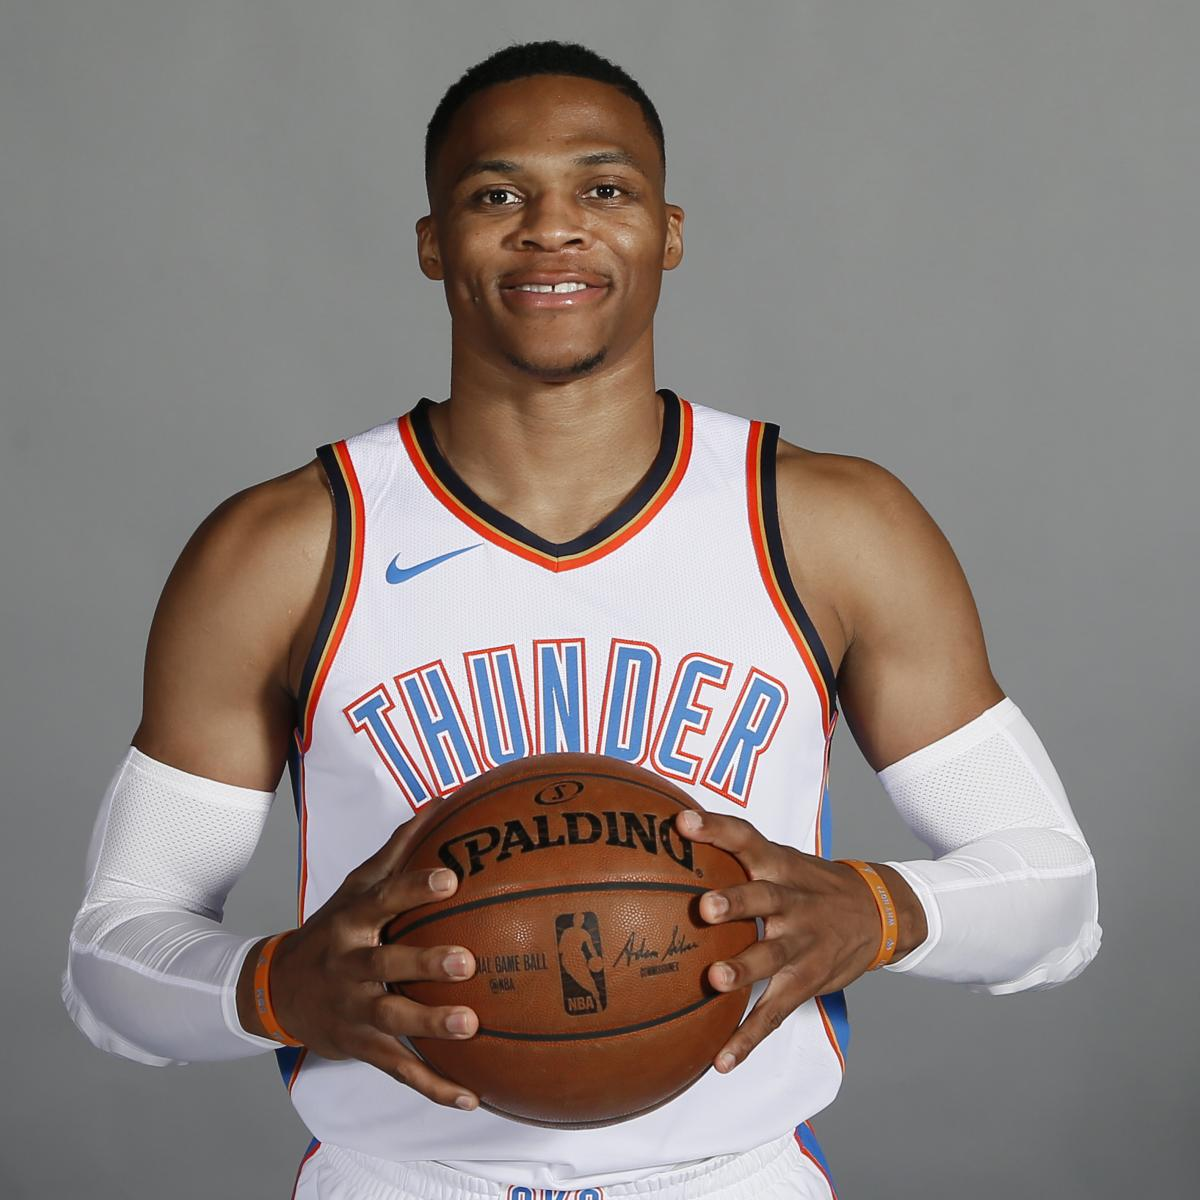 Westbrook's Extension, Lower Salary Cap Bad News For